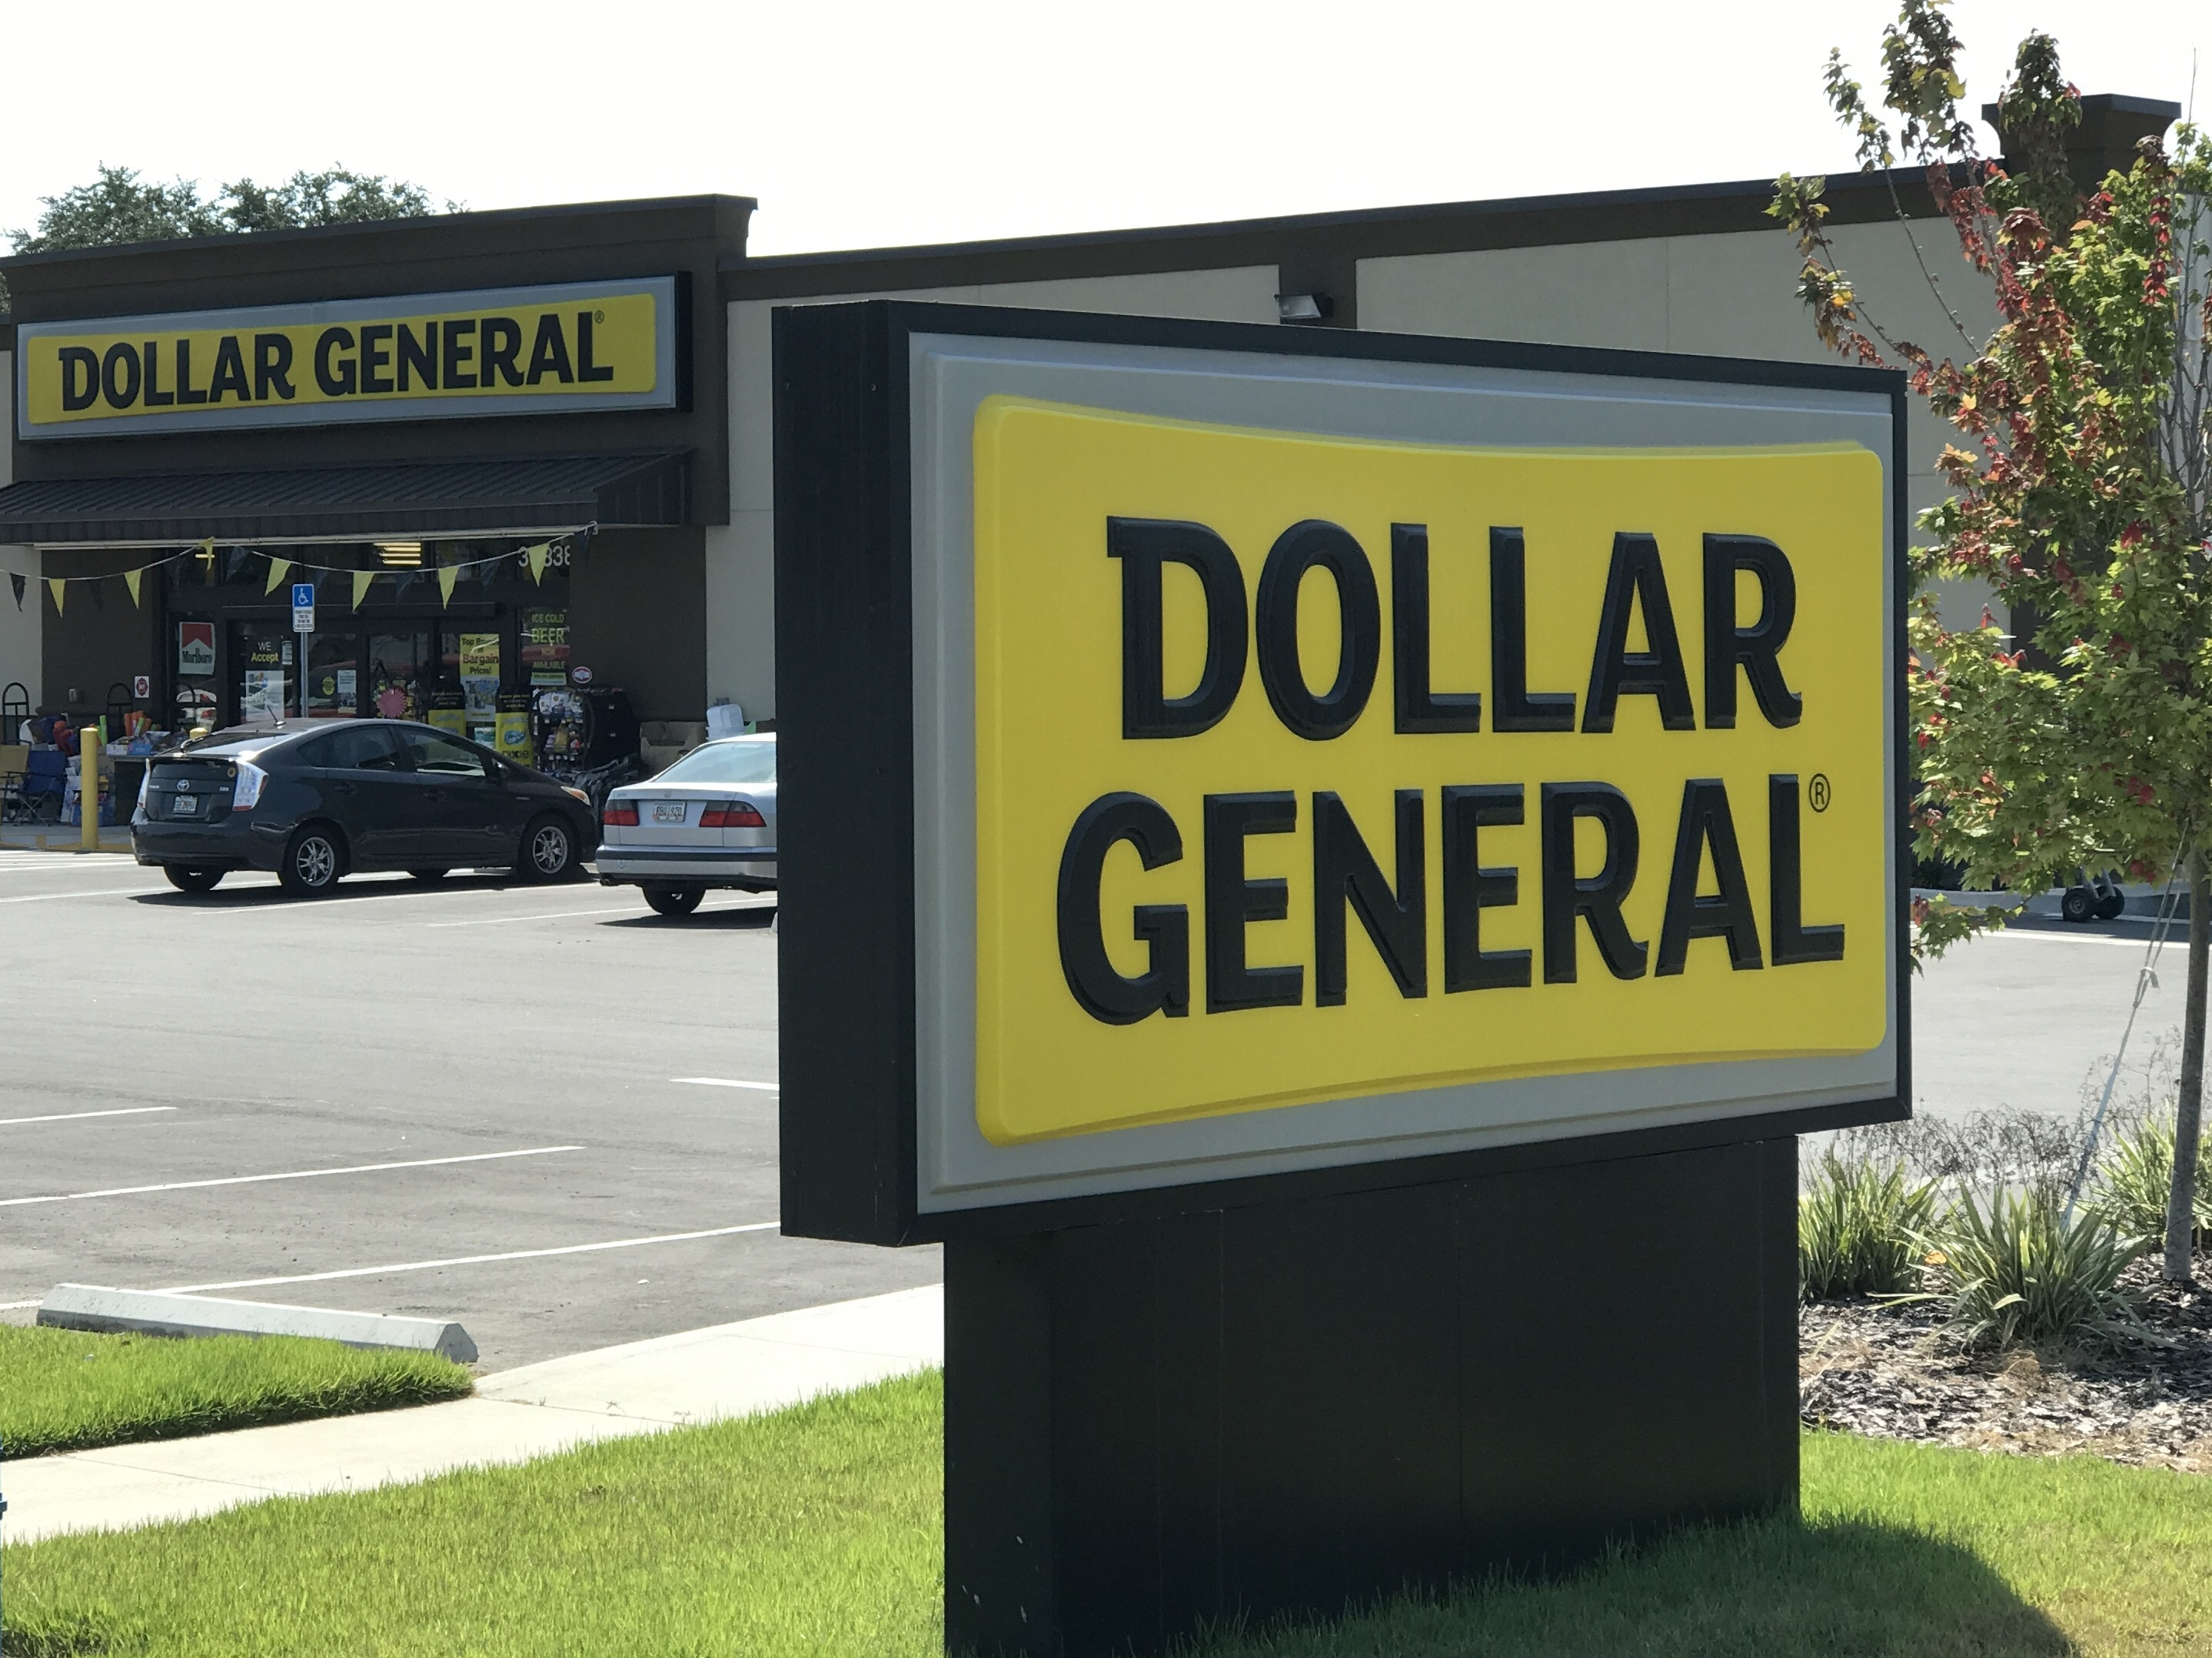 Diehard Bargain Hunter: Dollar General Corporation (DG), Conduent Incorporated (CNDT)